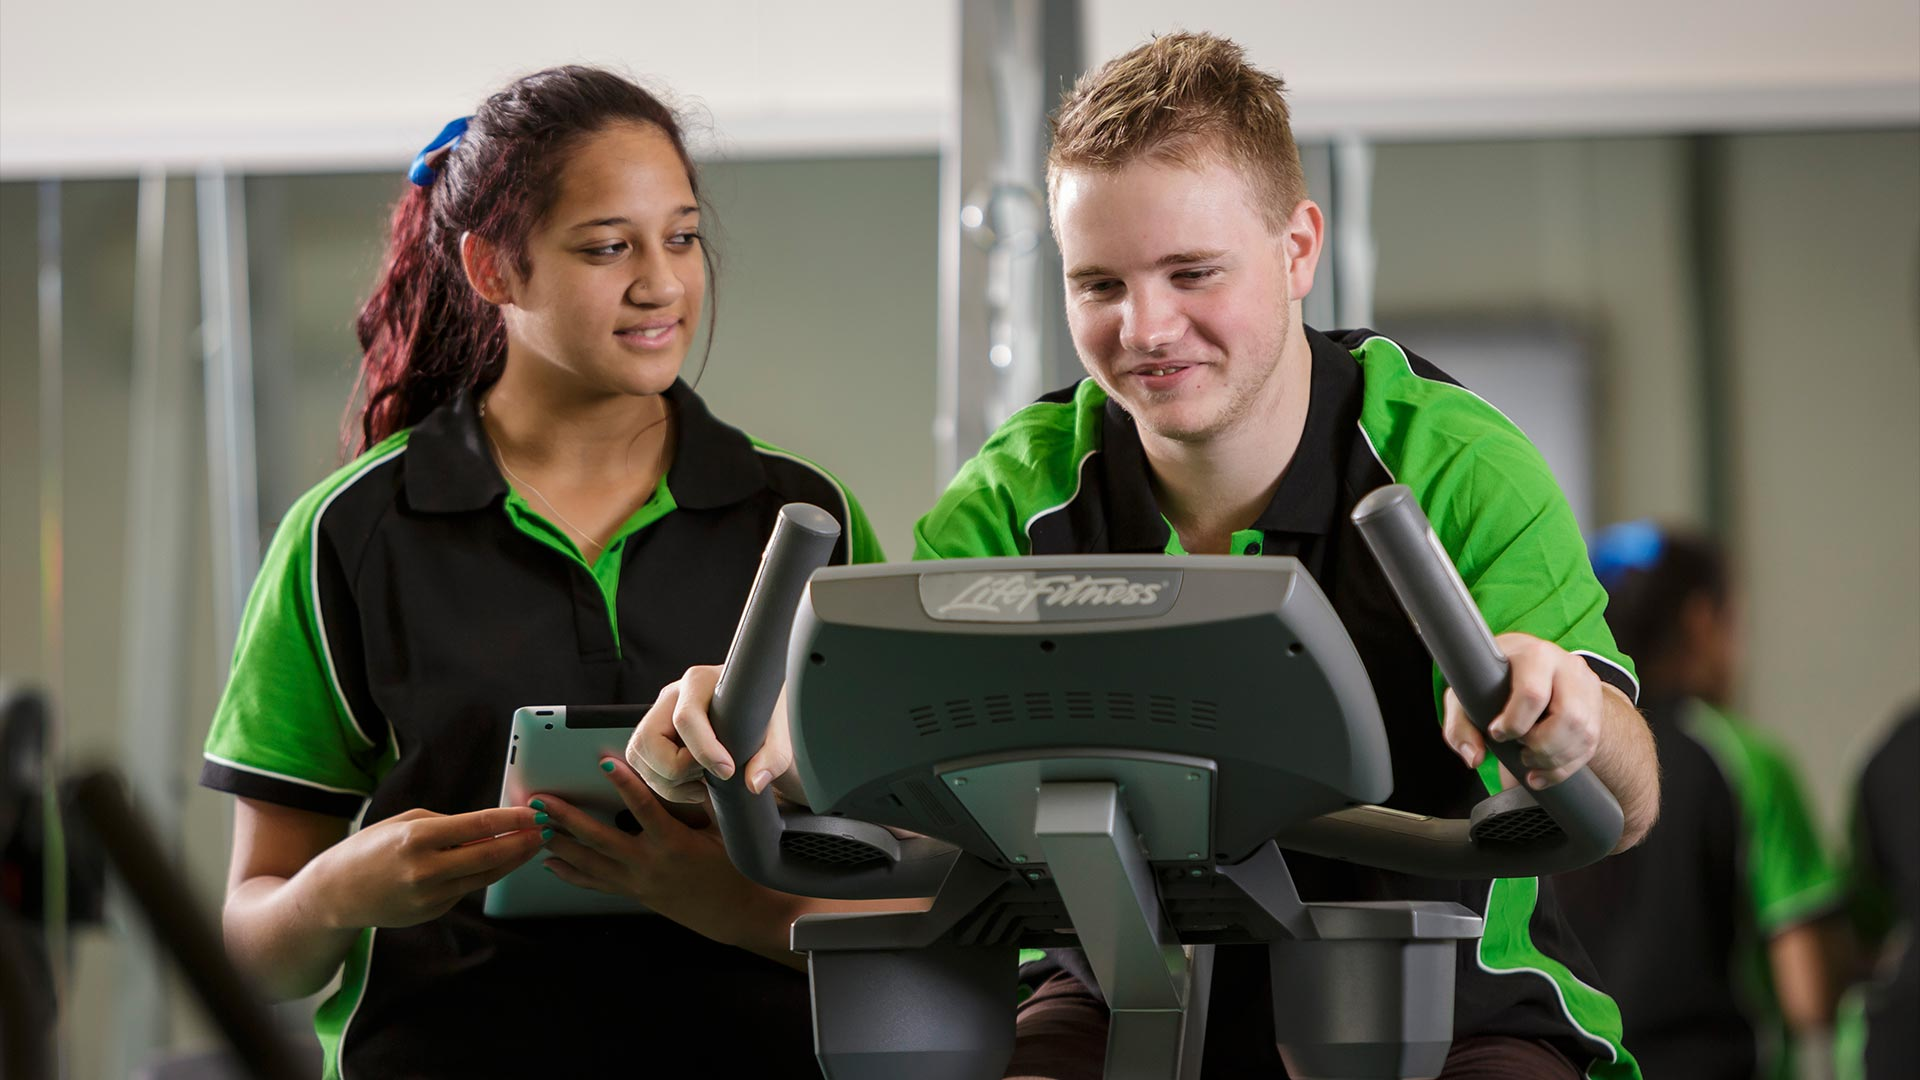 caboolture-facilities-gyms-and-sports-facilities-06.jpg